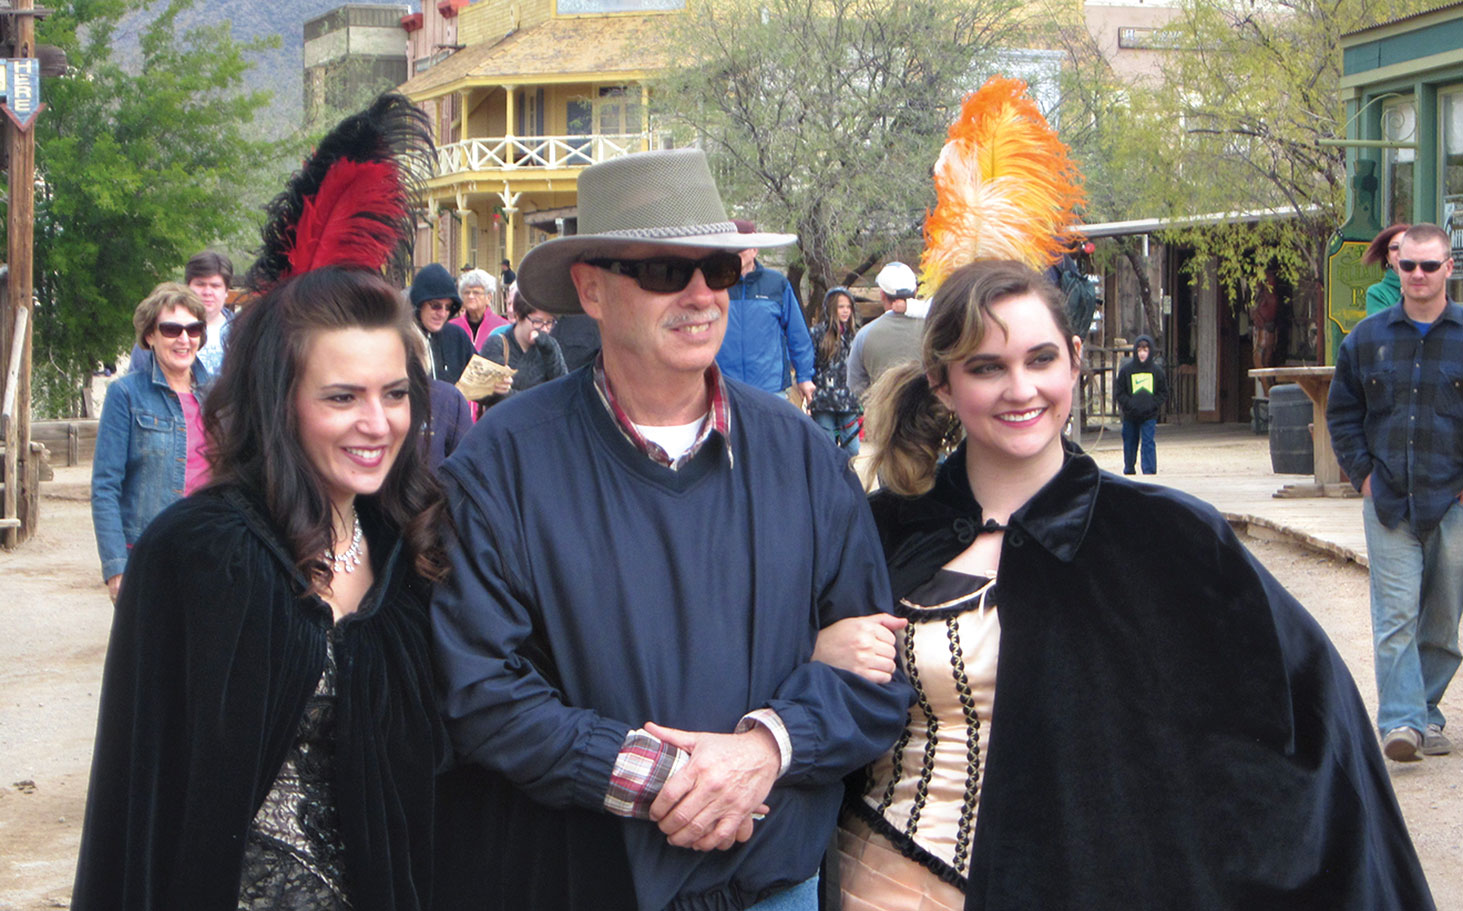 Old Tucson Street – While Linda Nicholson looks on from behind, left, Mike Nicholson enjoys the sights at Old Tucson Studios with two dance hall girls.